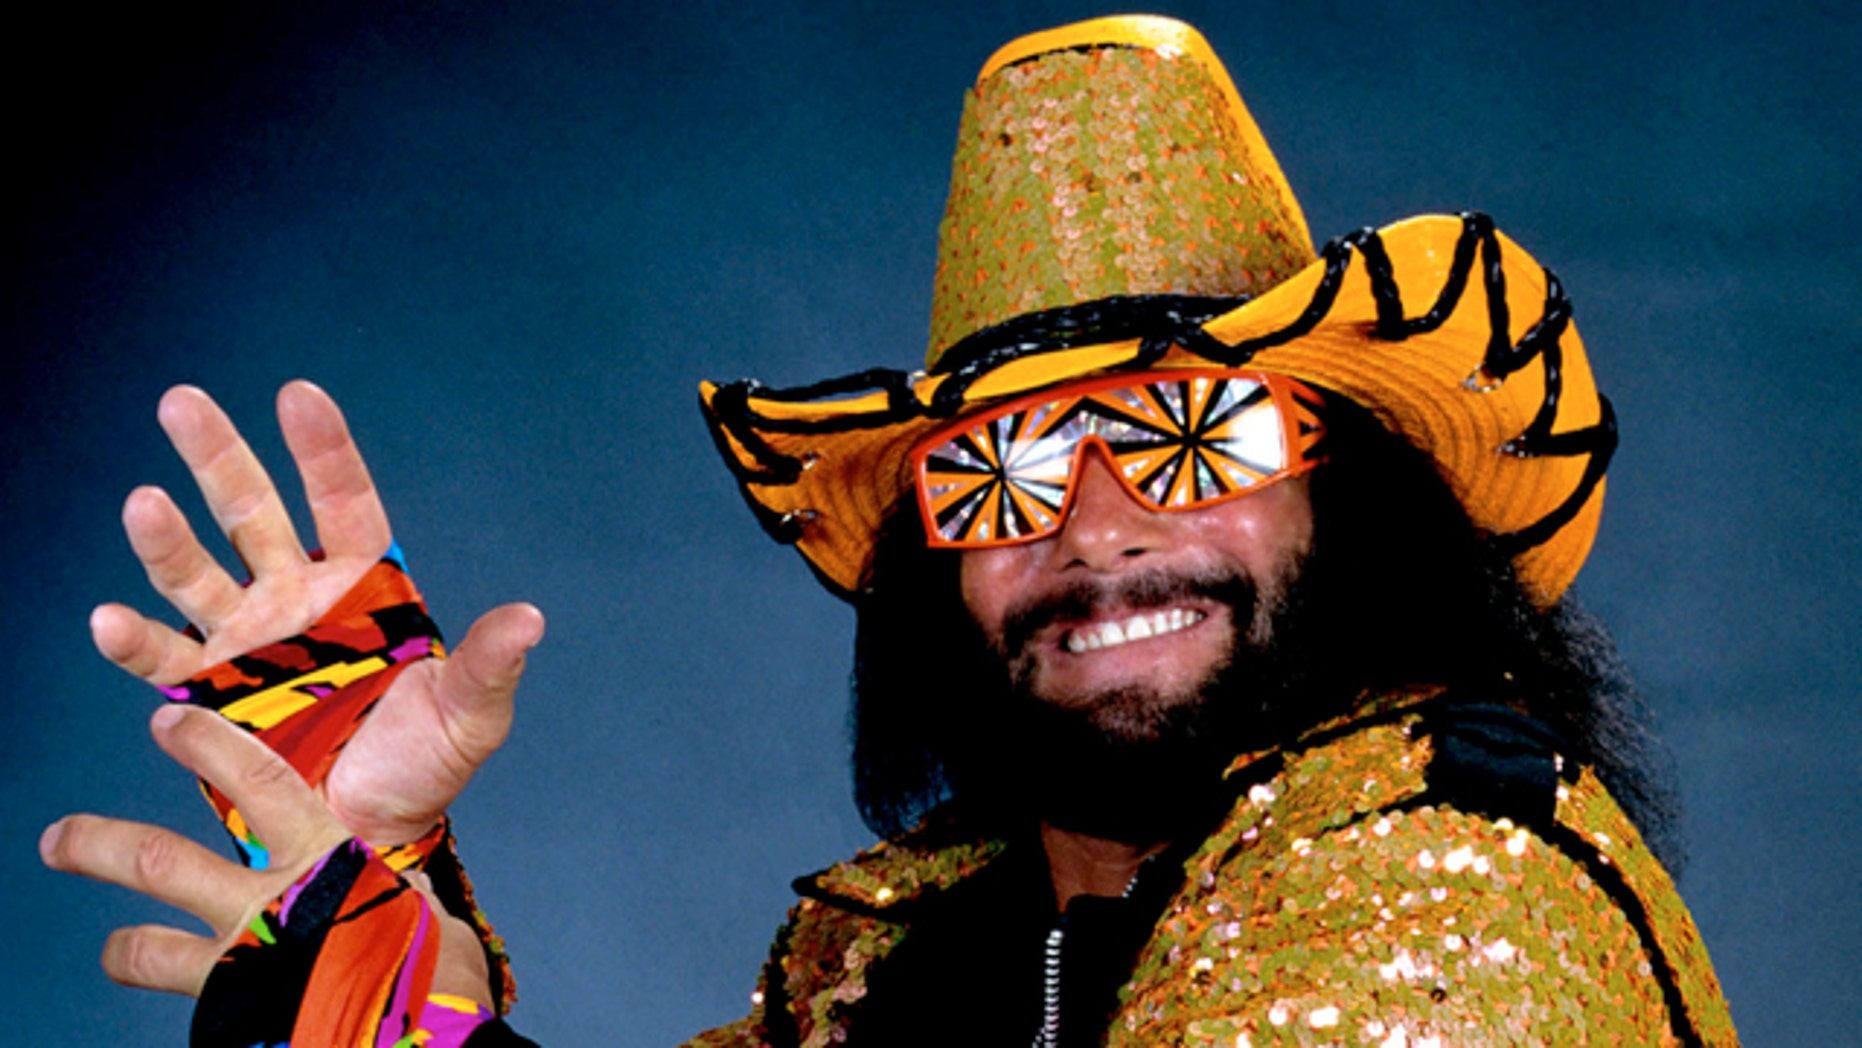 """In this undated publicity image released by WWE, professional wrestler Randy """"Macho Man"""" Savage is shown."""